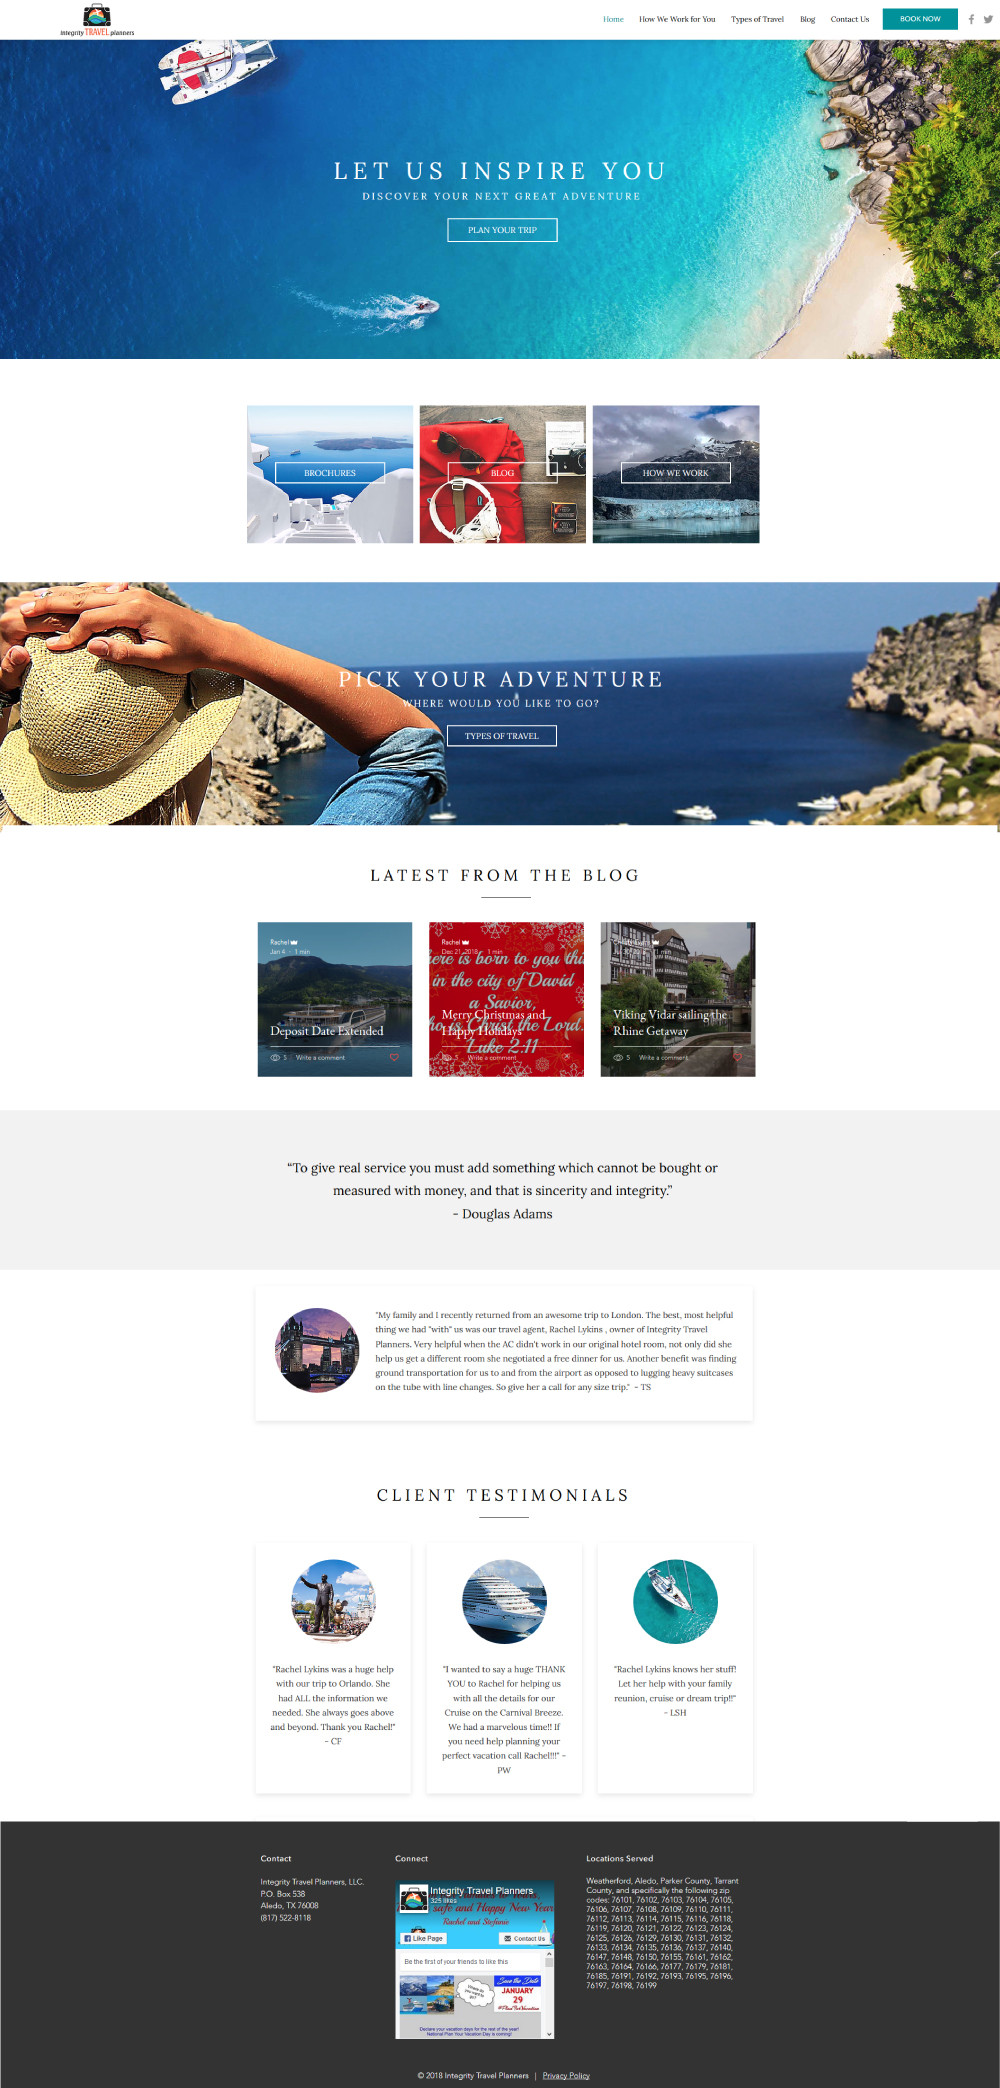 Home page view of Integrity Travel Planners - Wix Website - Christy Evans Design